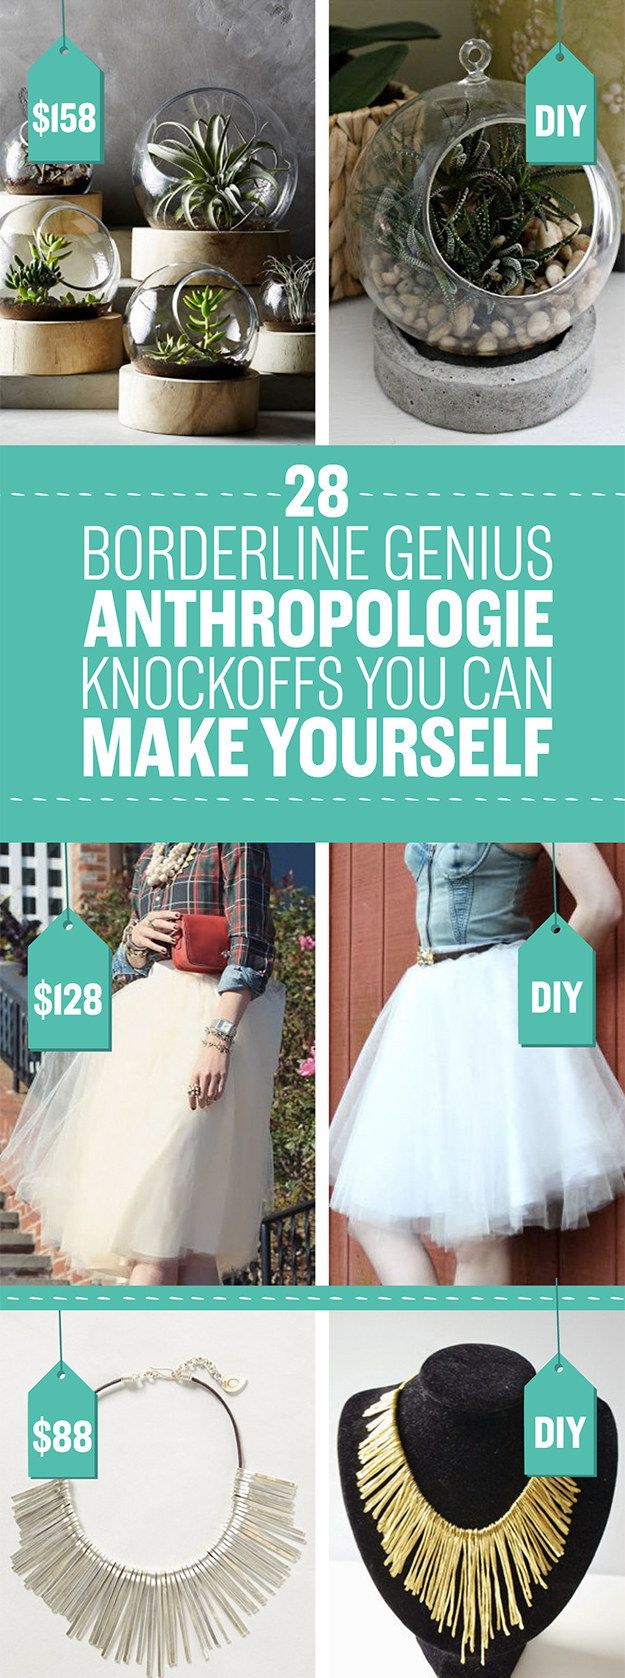 26 Impossibly Cool Anthropologie Knockoffs You're Gonna Want To Make Right Now